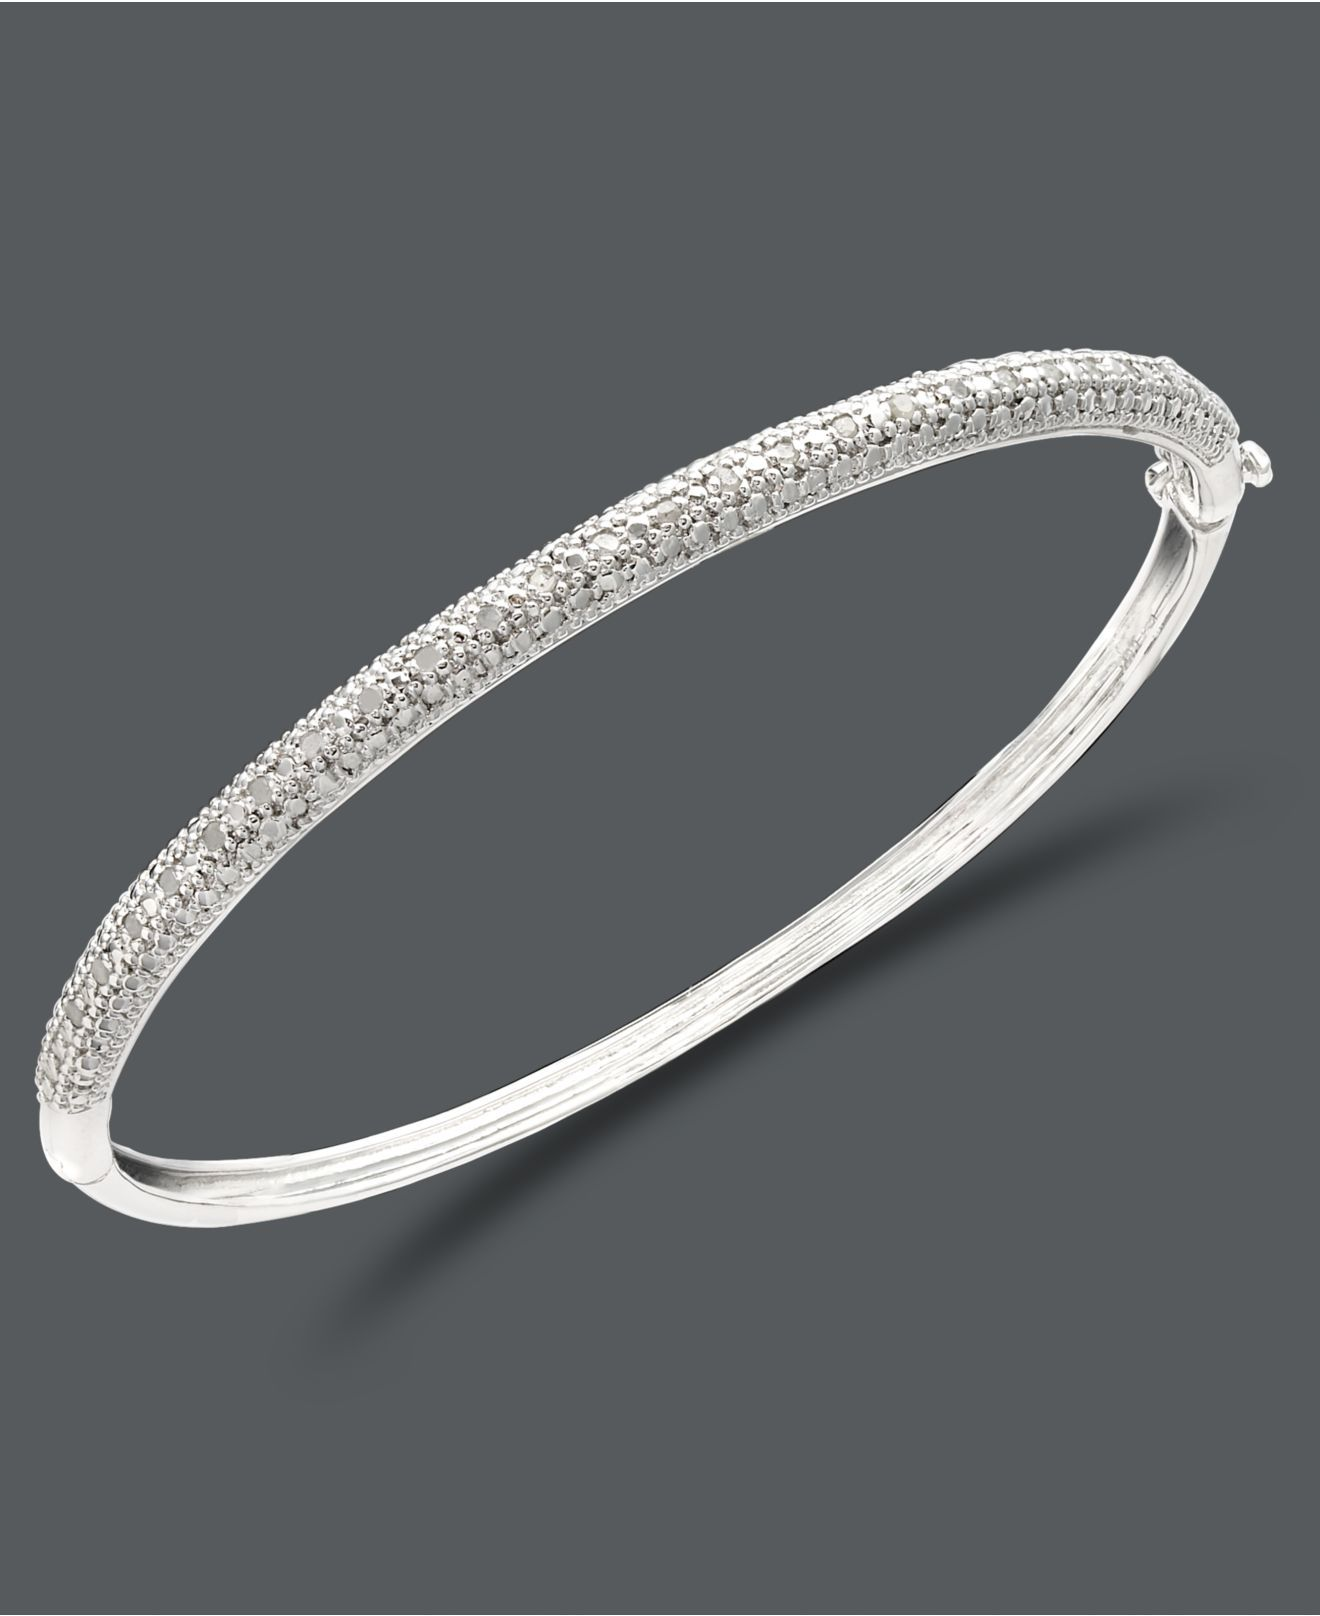 zirconia sterling bracelet cubic jewelry round bangle rhodium tennis amazon inch dp diamond cut bangles silver com